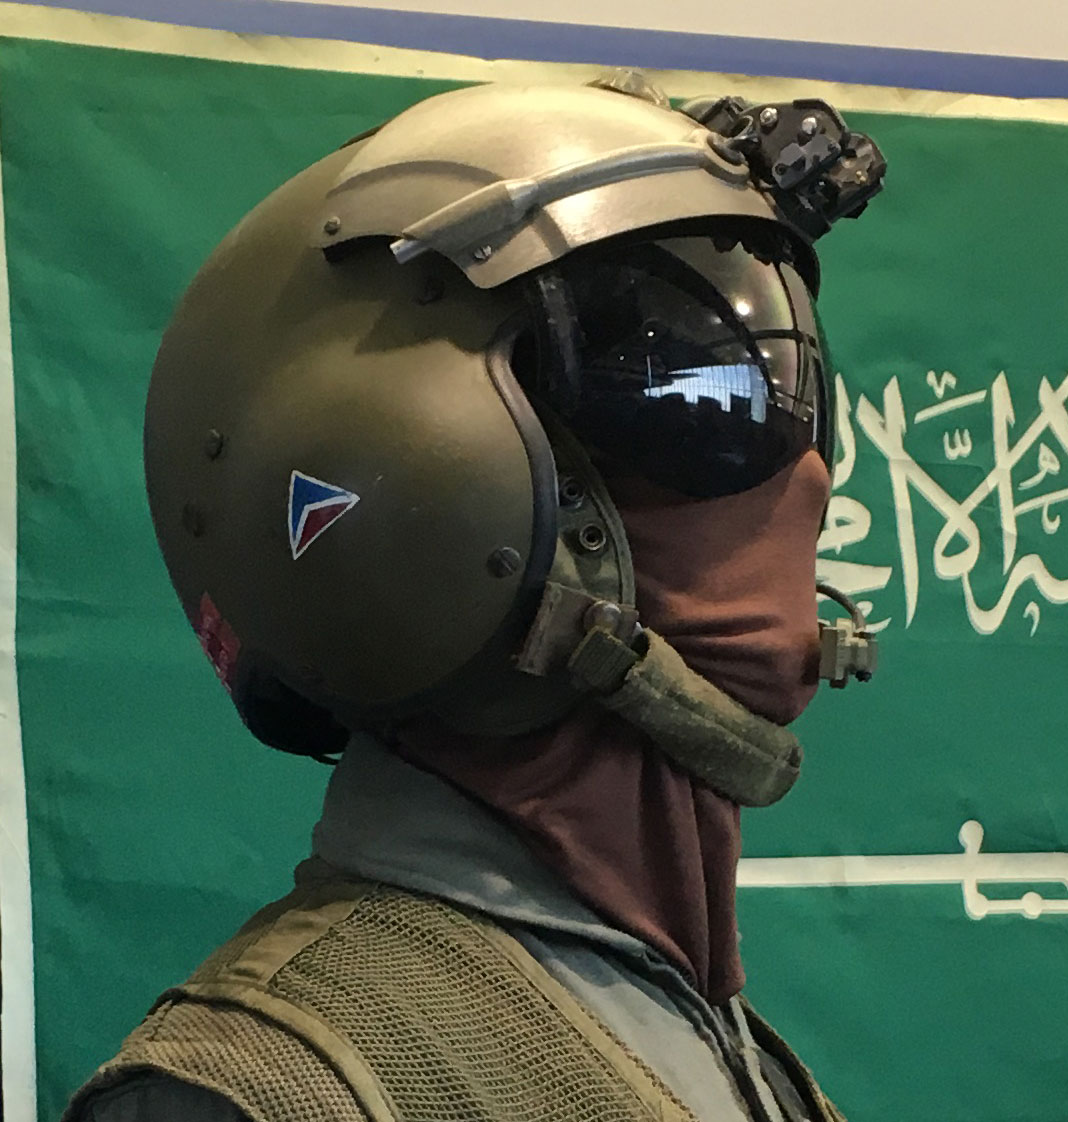 Image of Persian Gulf War Exhibit at the Delta Flight Museum showing flight helmet with Delta widget